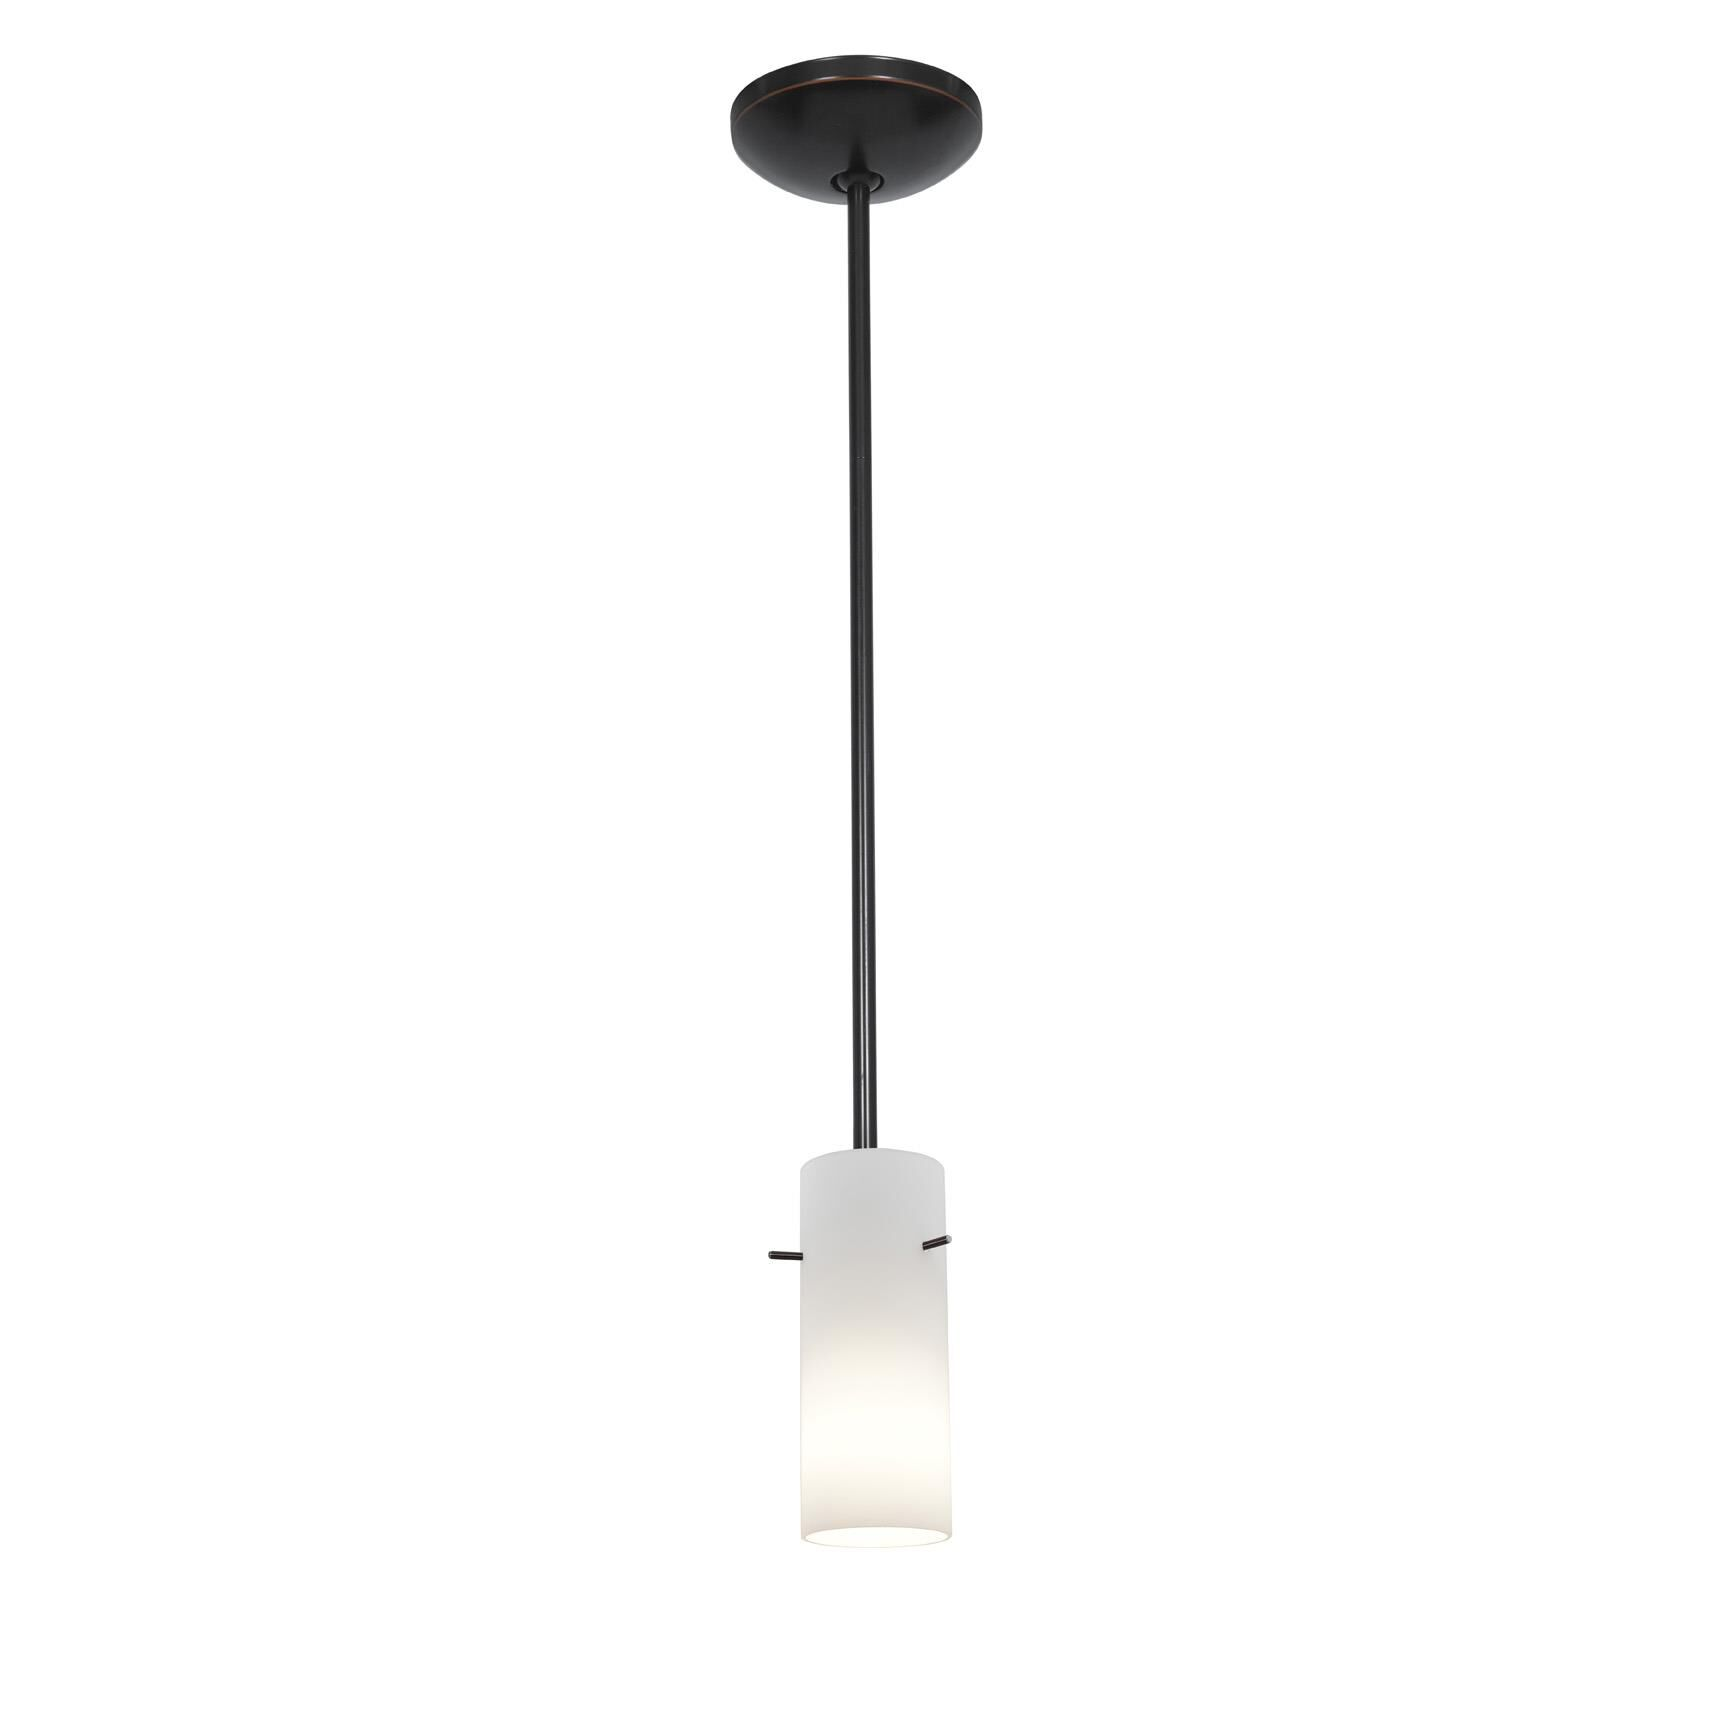 Access Lighting Cylinder 4 Inch Mini Pendant Cylinder 28030 1R ORBOPL Modern Contemporary